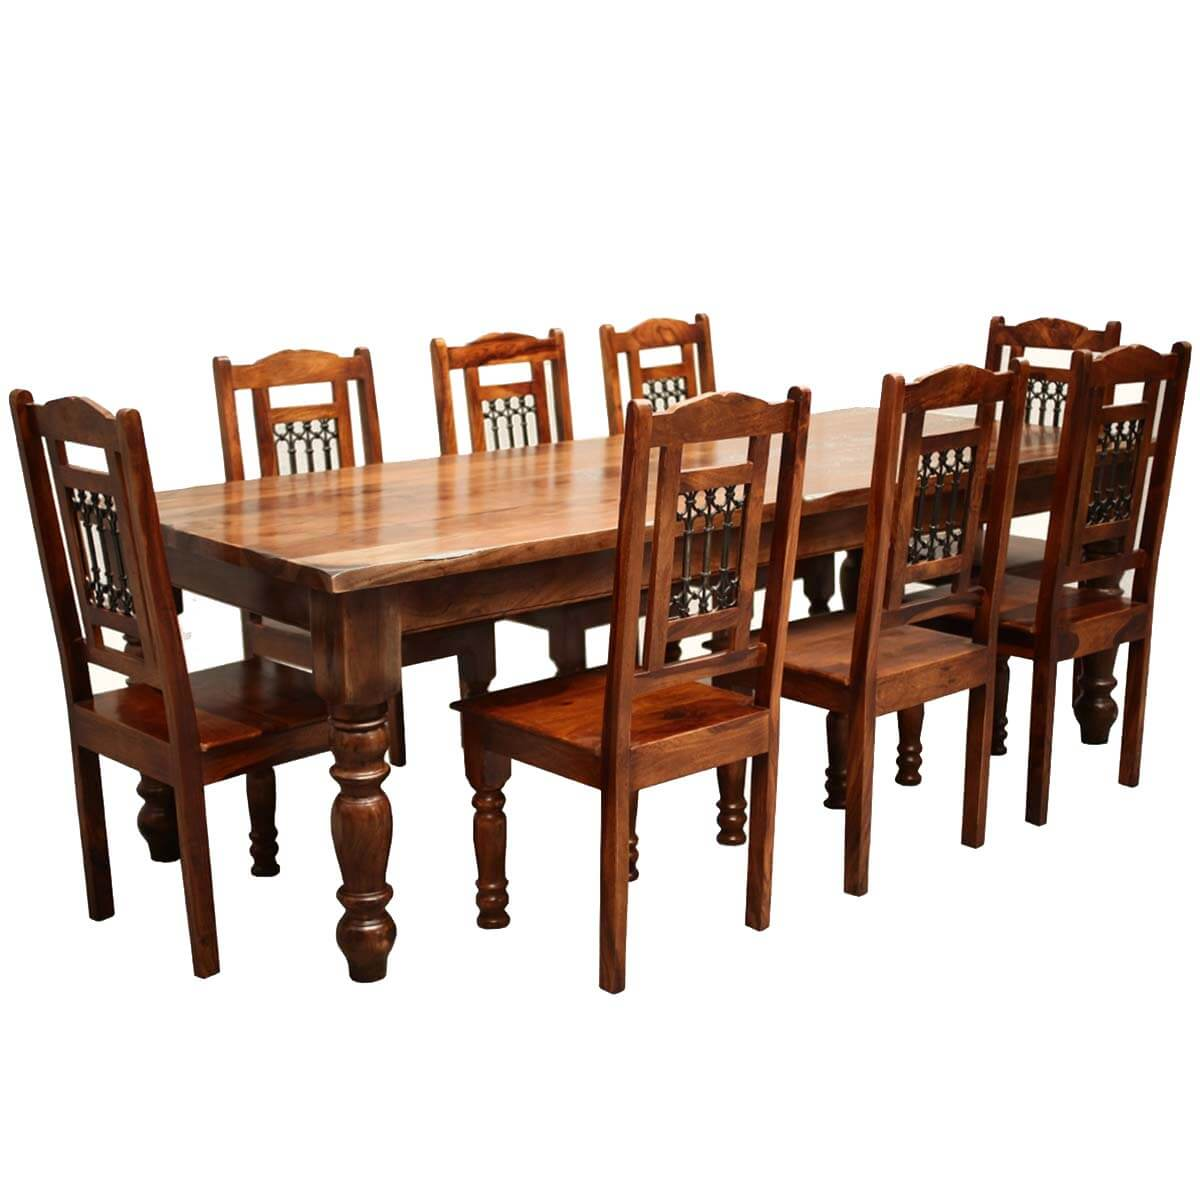 Solid Wood Dining Room Tables And Chairs Espresso Pc Counter Height Ideal Dining Room Furniture Five Piece